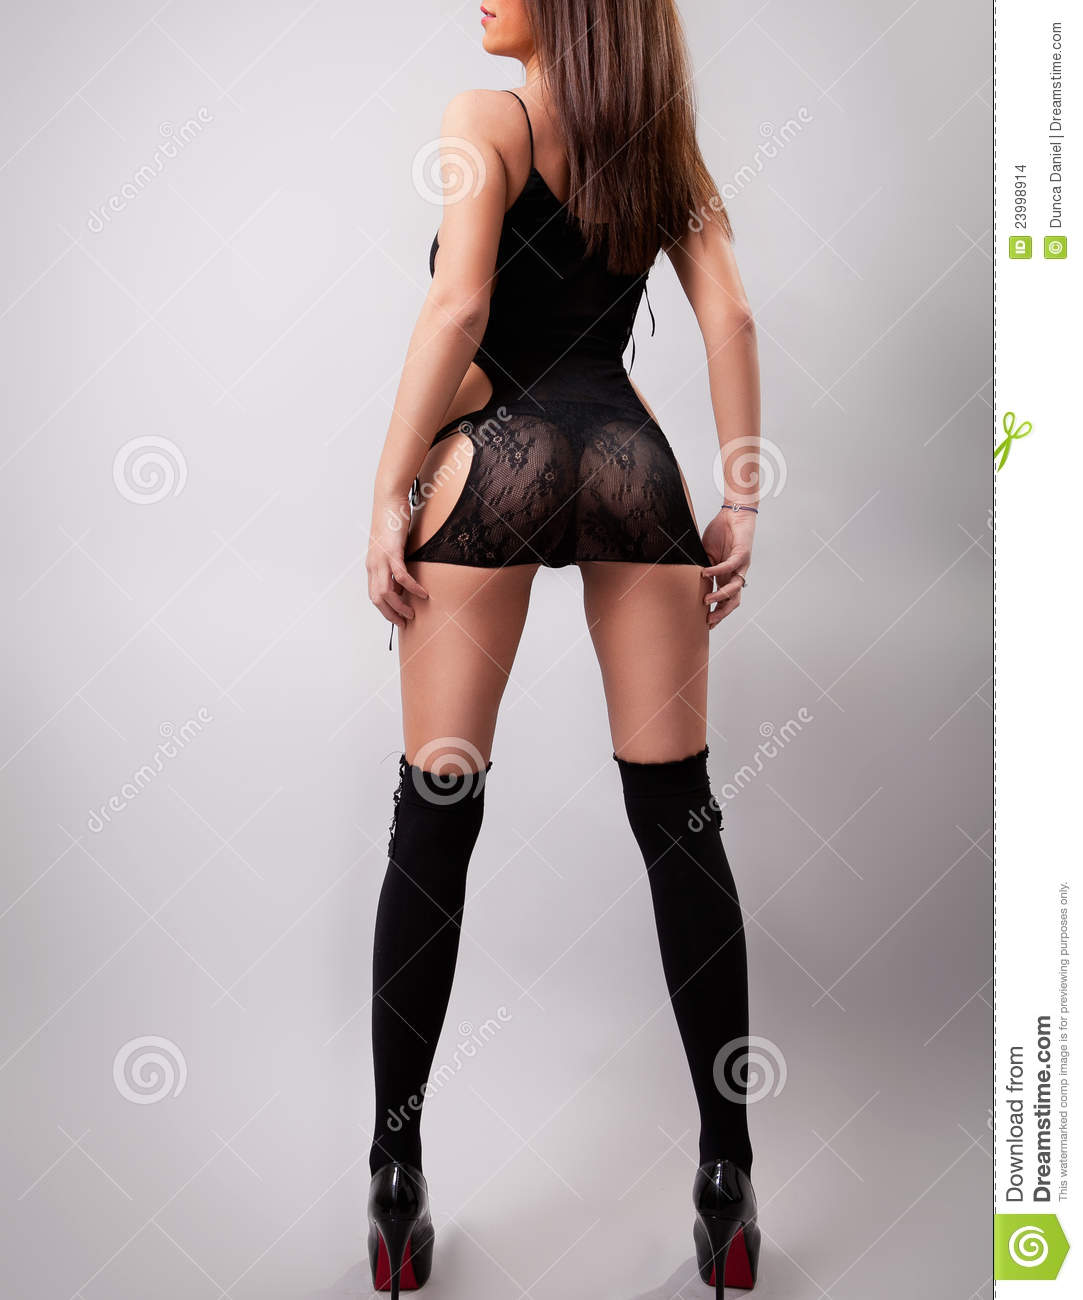 woman with and legs stock photo. image of caucasian, model - 23998914